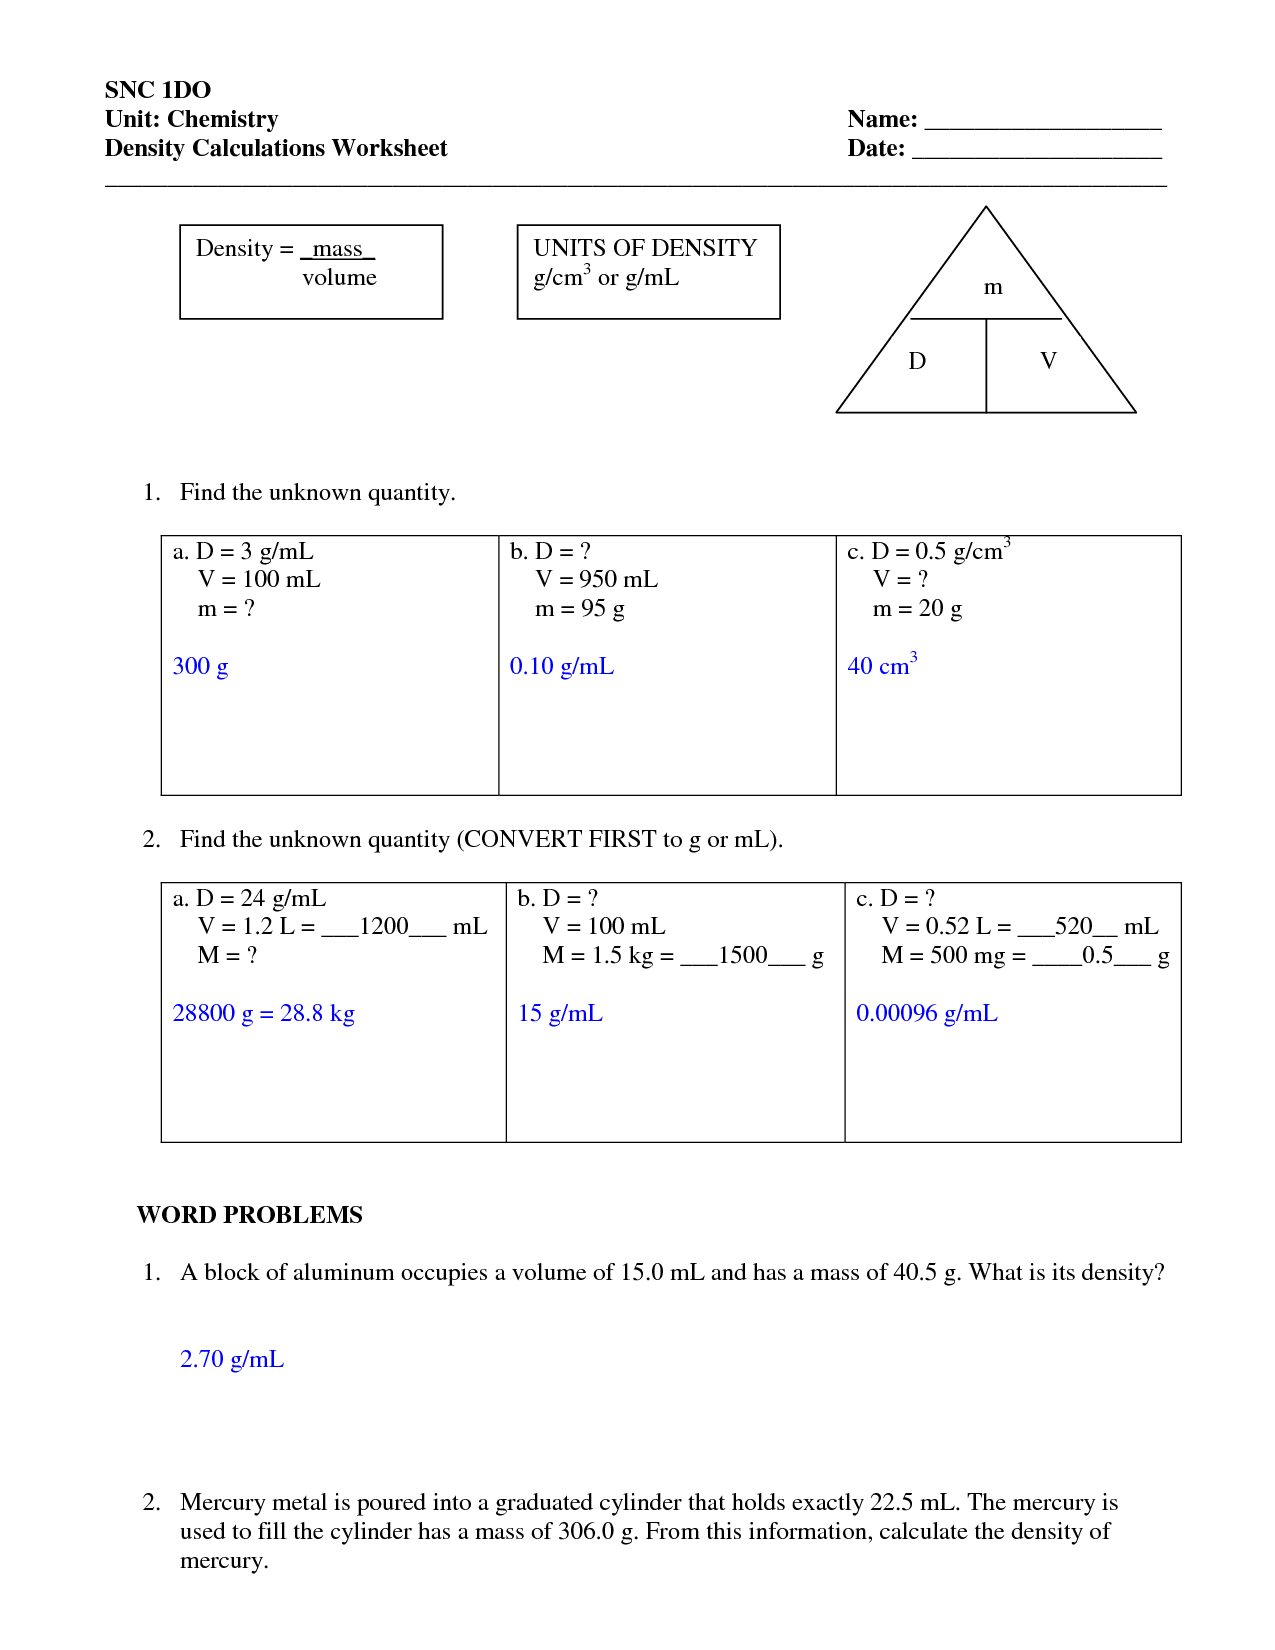 Density Calculations Worksheet Answers Photos - Signaturebymm